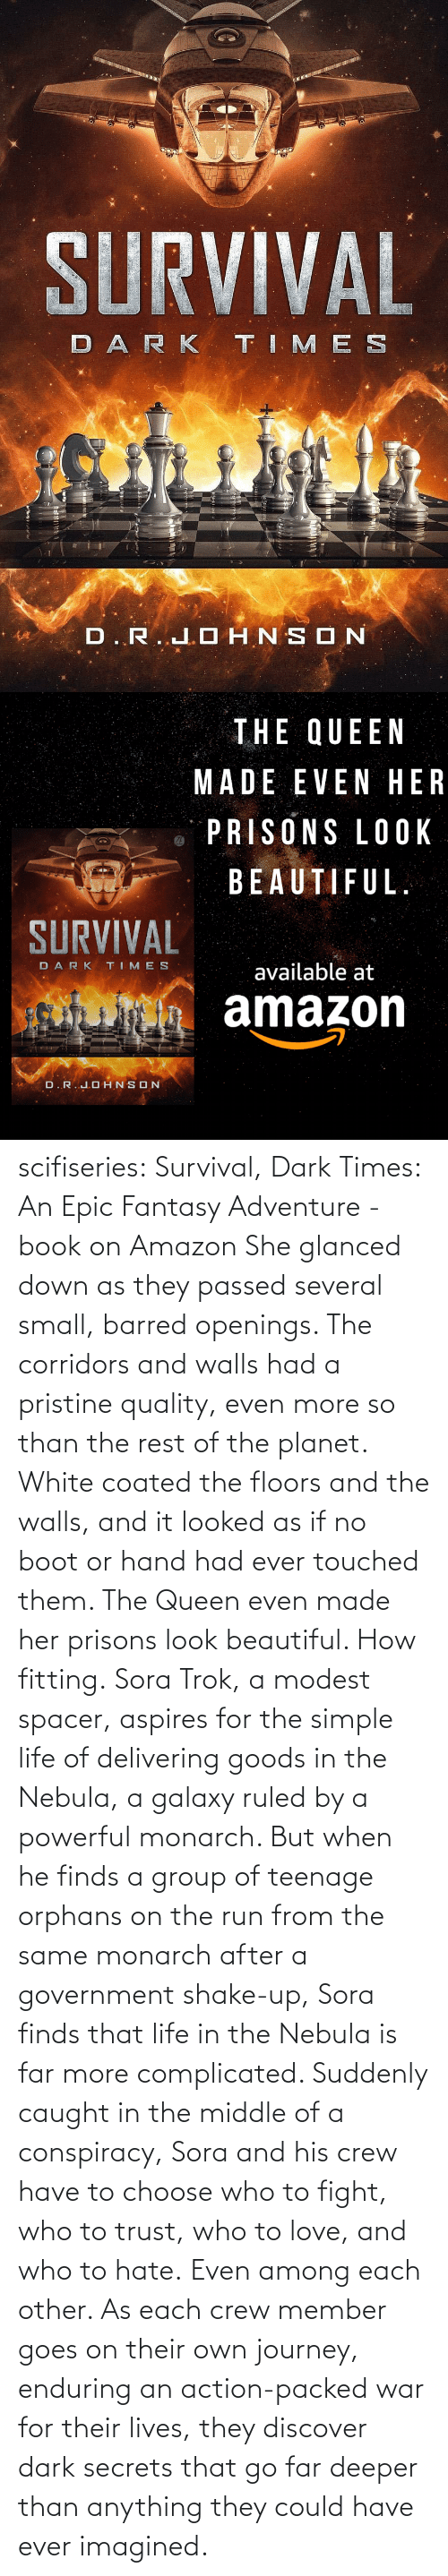 them: scifiseries: Survival, Dark Times: An Epic Fantasy Adventure - book on Amazon  She glanced down as they  passed several small, barred openings. The corridors and walls had a  pristine quality, even more so than the rest of the planet. White coated  the floors and the walls, and it looked as if no boot or hand had ever  touched them.  The Queen even made her prisons look beautiful.  How fitting. Sora  Trok, a modest spacer, aspires for the simple life of delivering goods  in the Nebula, a galaxy ruled by a powerful monarch. But when he finds a  group of teenage orphans on the run from the same monarch after a  government shake-up, Sora finds that life in the Nebula is far more complicated.  Suddenly  caught in the middle of a conspiracy, Sora and his crew have to choose  who to fight, who to trust, who to love, and who to hate. Even among each other.  As  each crew member goes on their own journey, enduring an action-packed  war for their lives, they discover dark secrets that go far deeper than  anything they could have ever imagined.